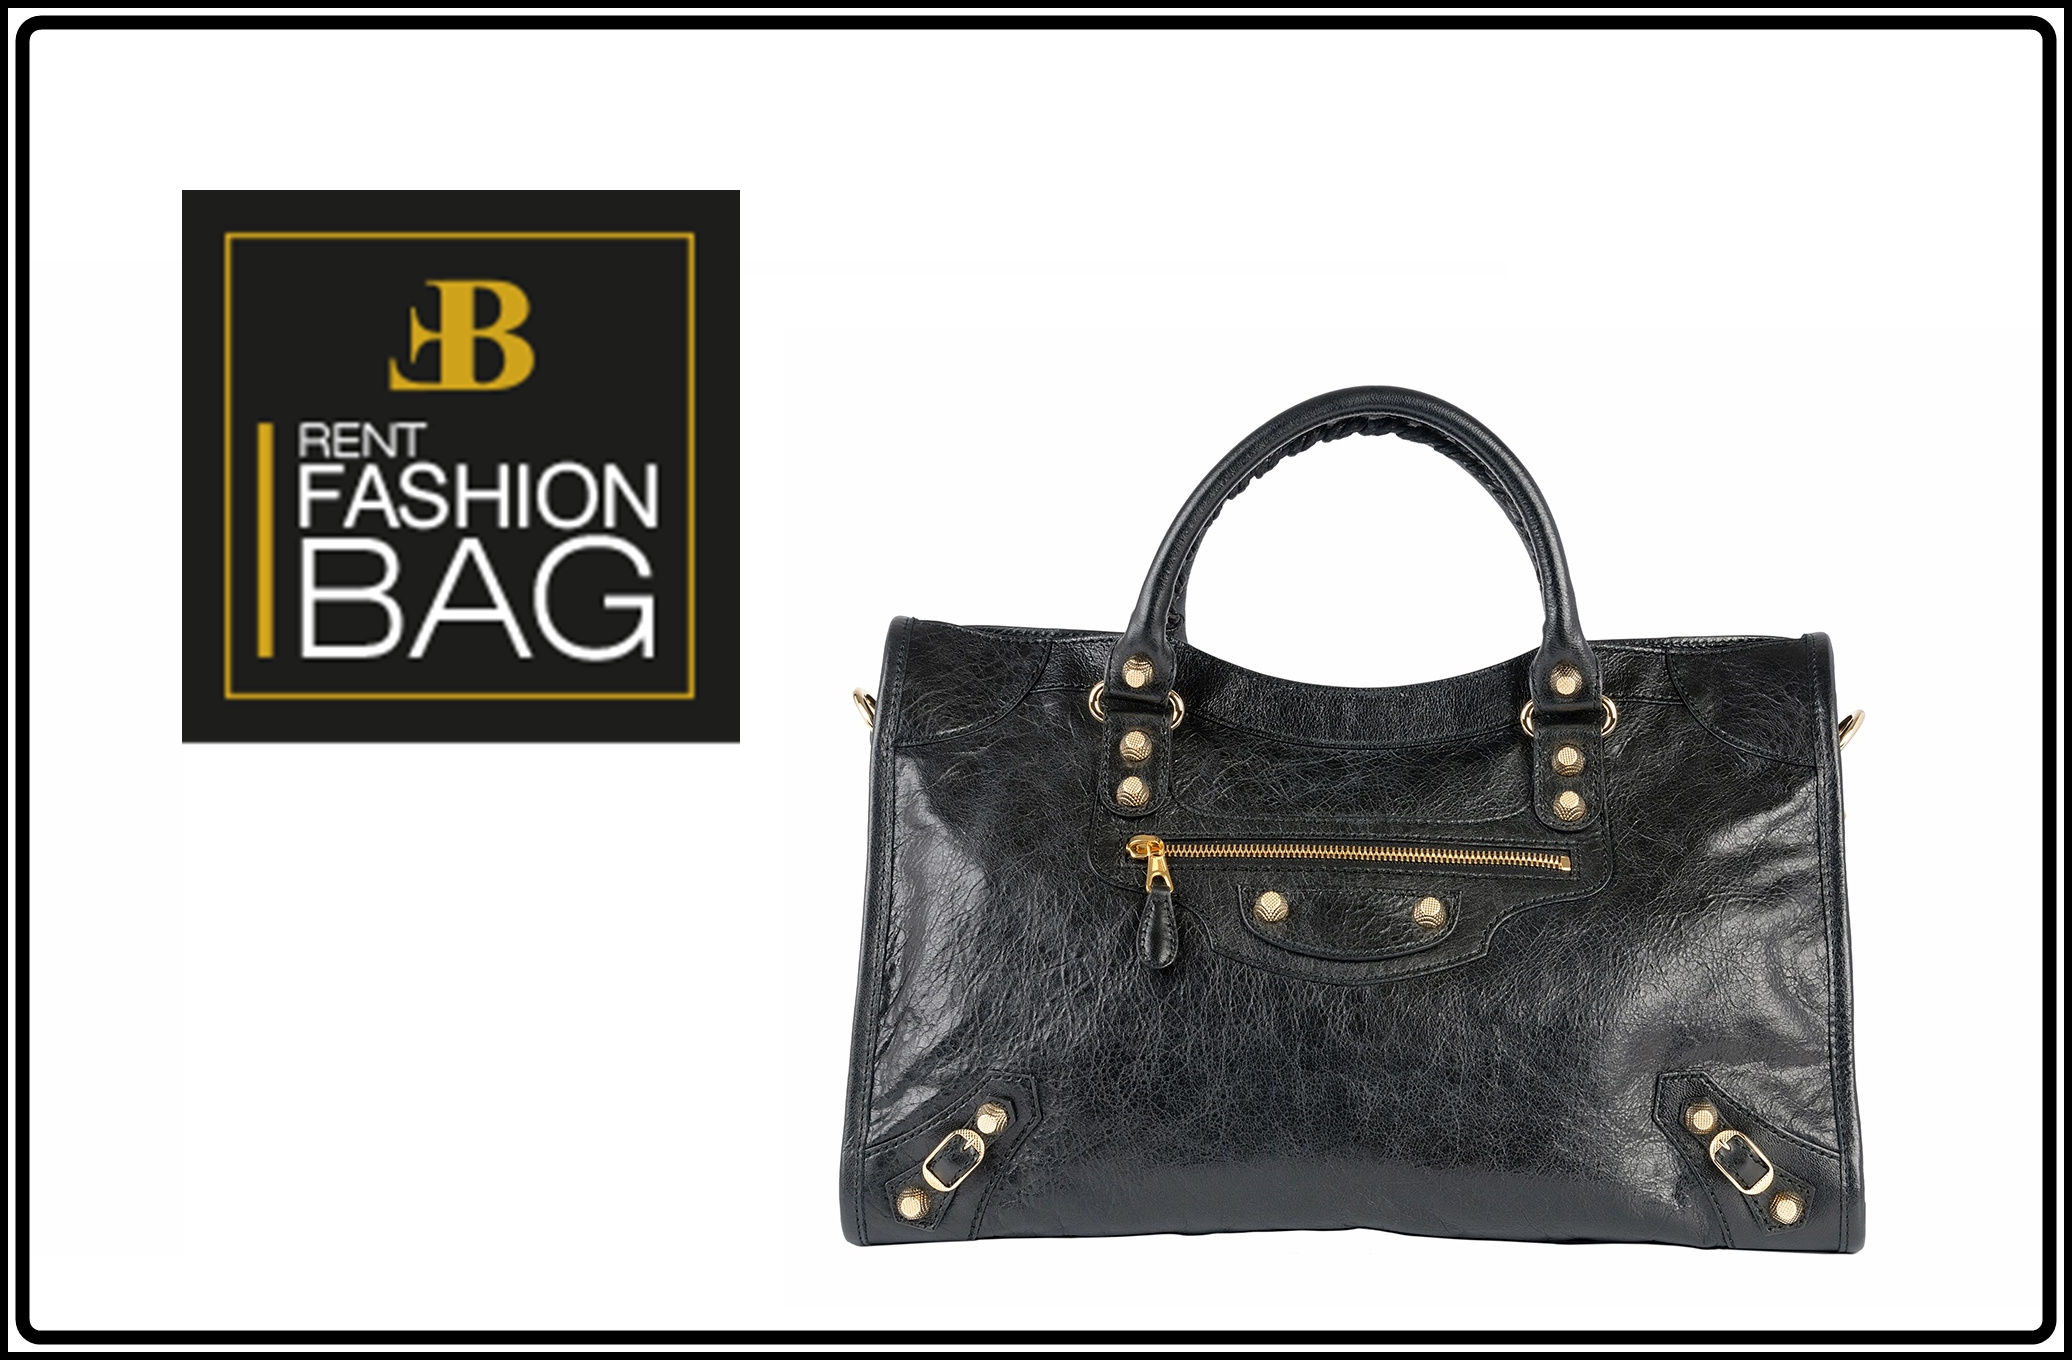 Rent Fashion Bag  la borsa dei sogni a casa tua bb453309349f